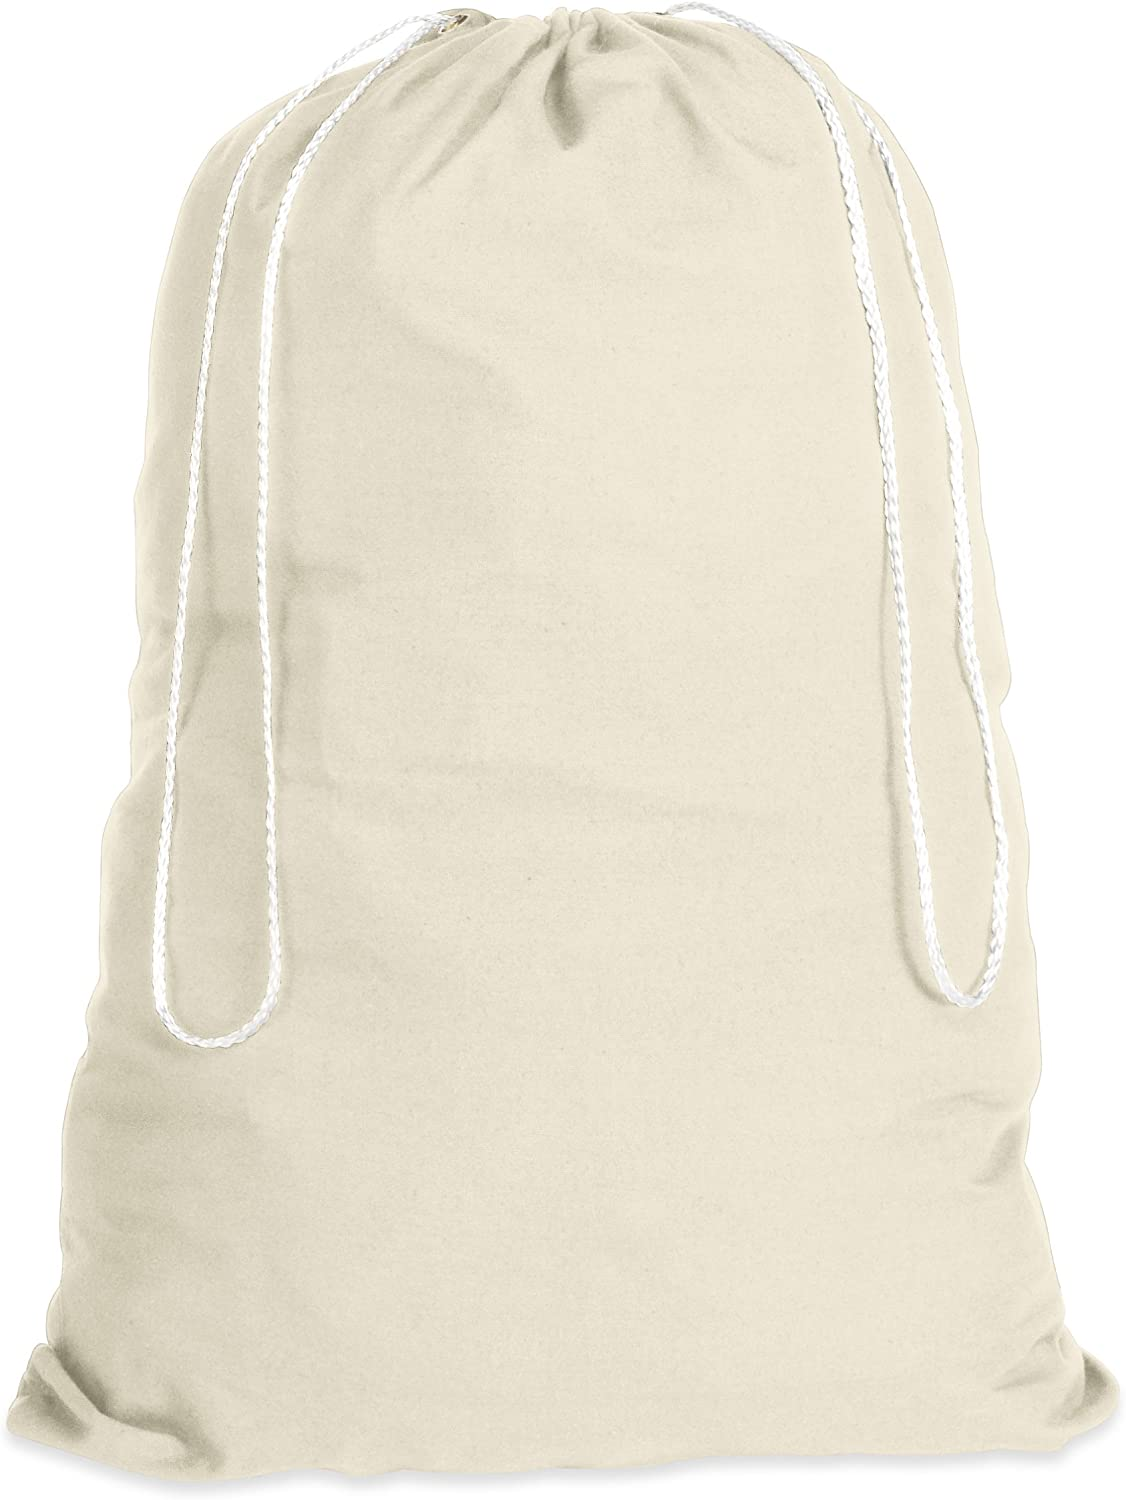 Whitmor Natural Cotton Laundry Bag